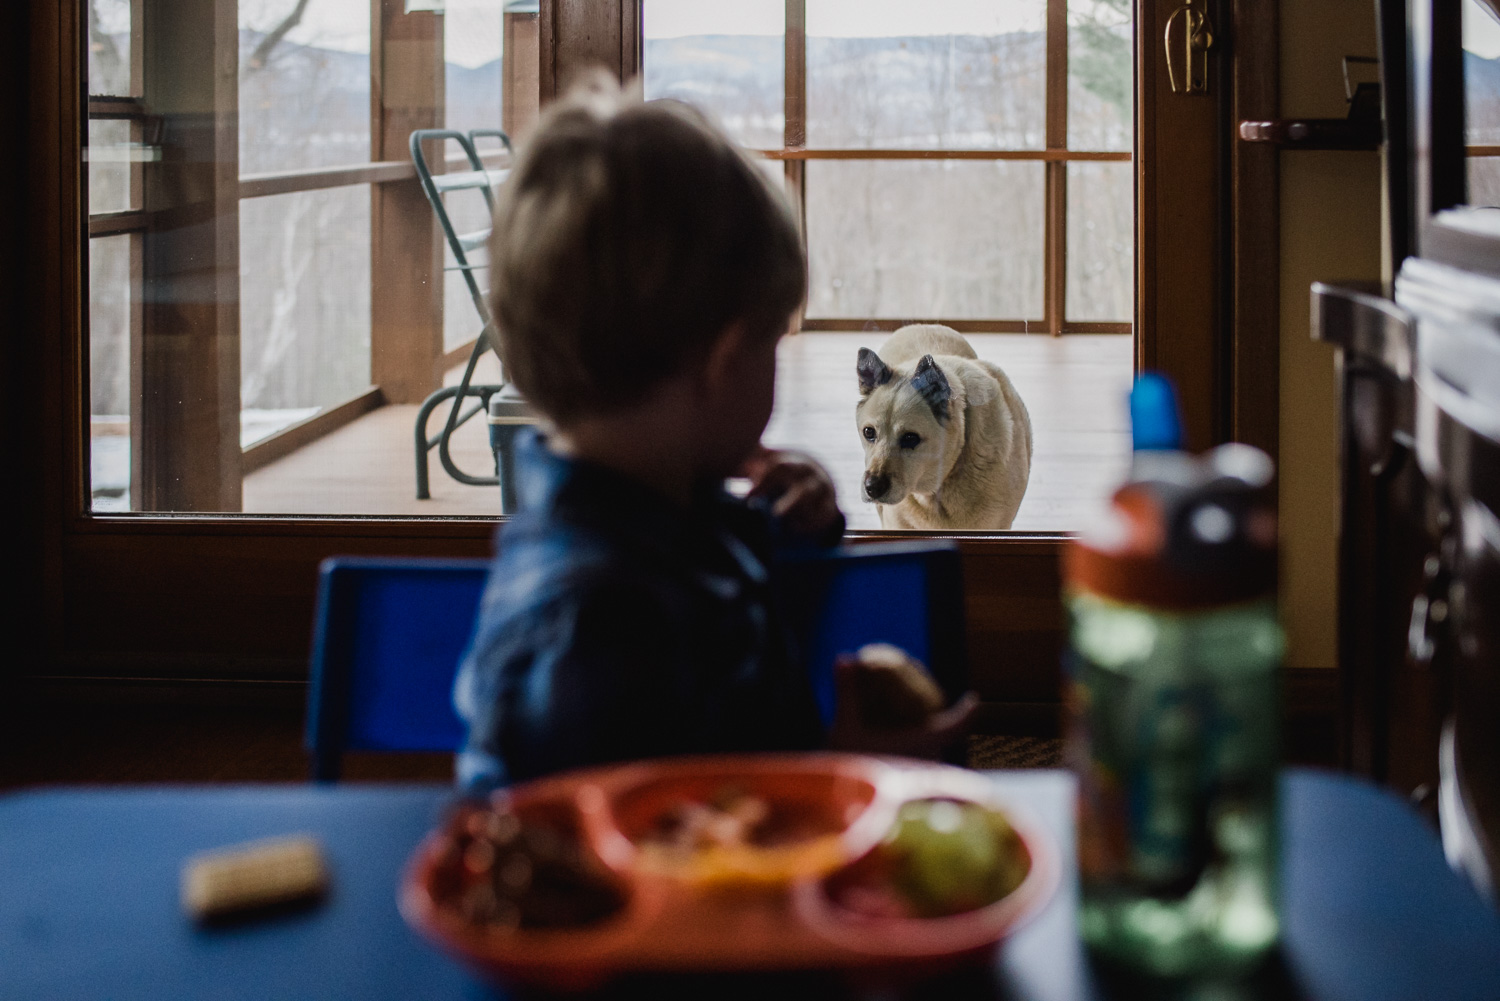 Dog looking forlornly at food on the table through a sliding glass door.